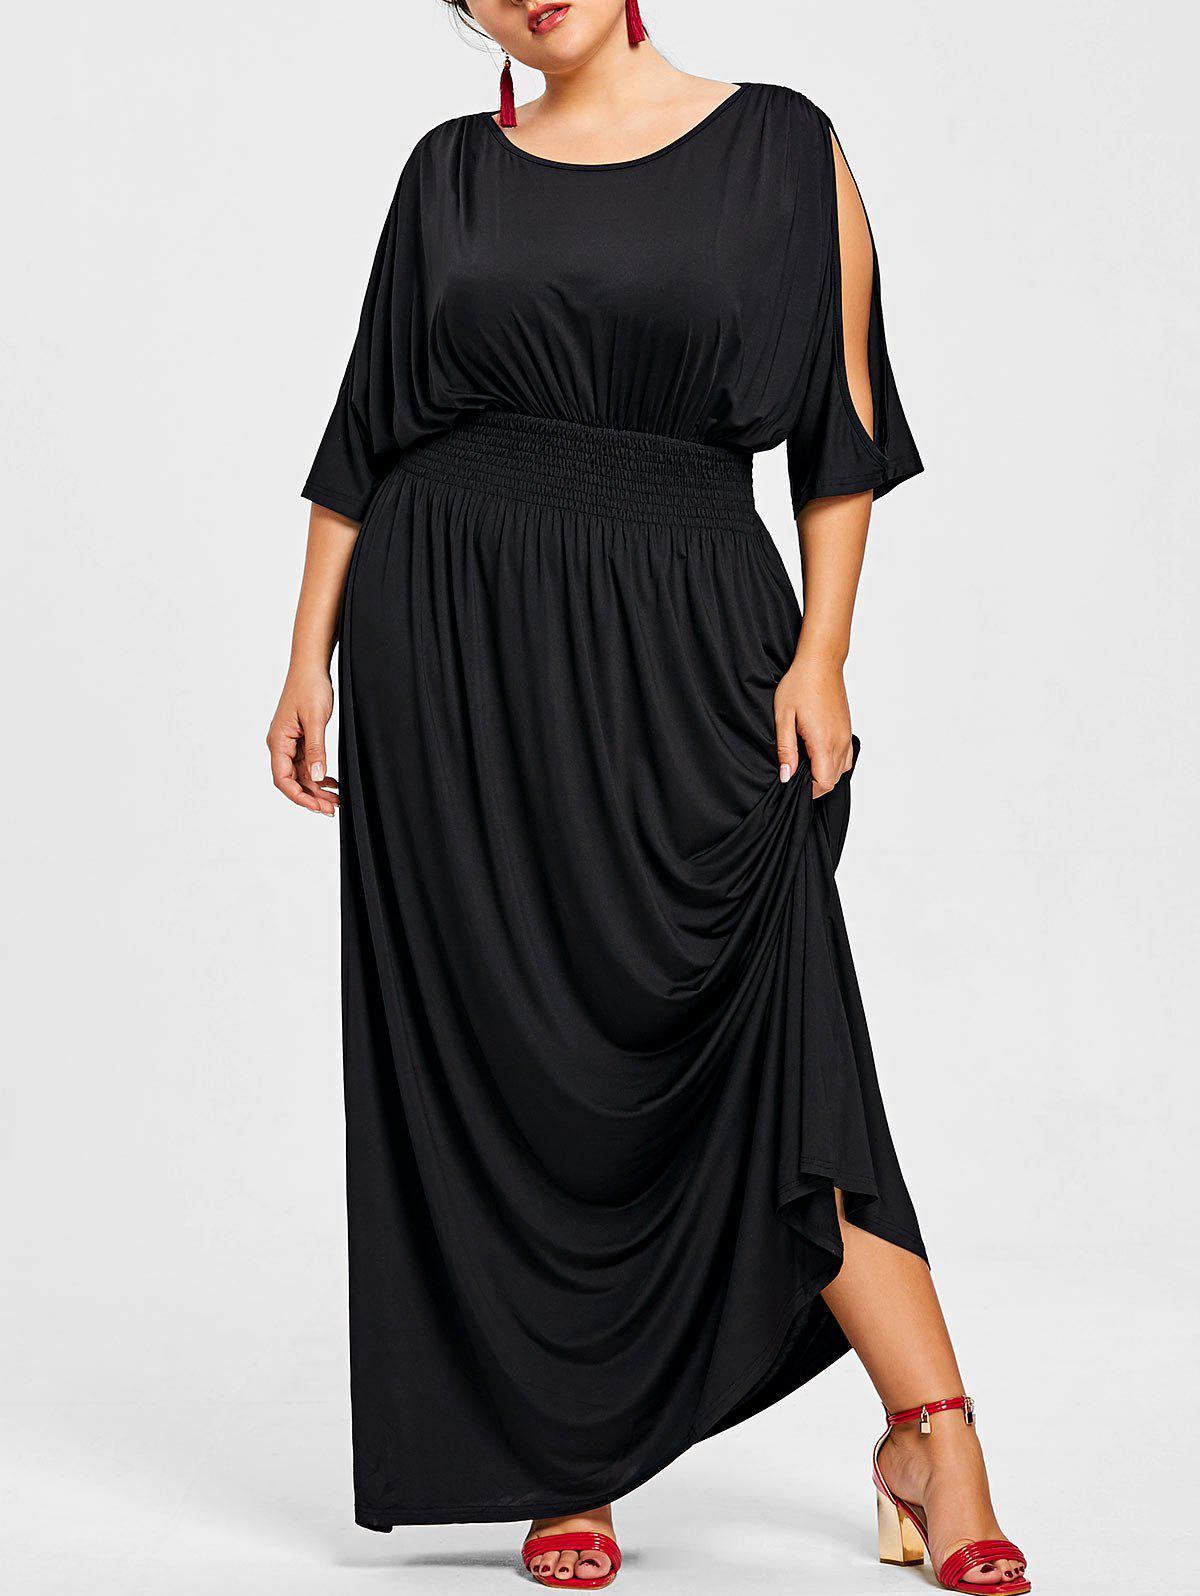 Slit Sleeve Plus Size Elastic Waist Maxi Dress - BLACK 3X